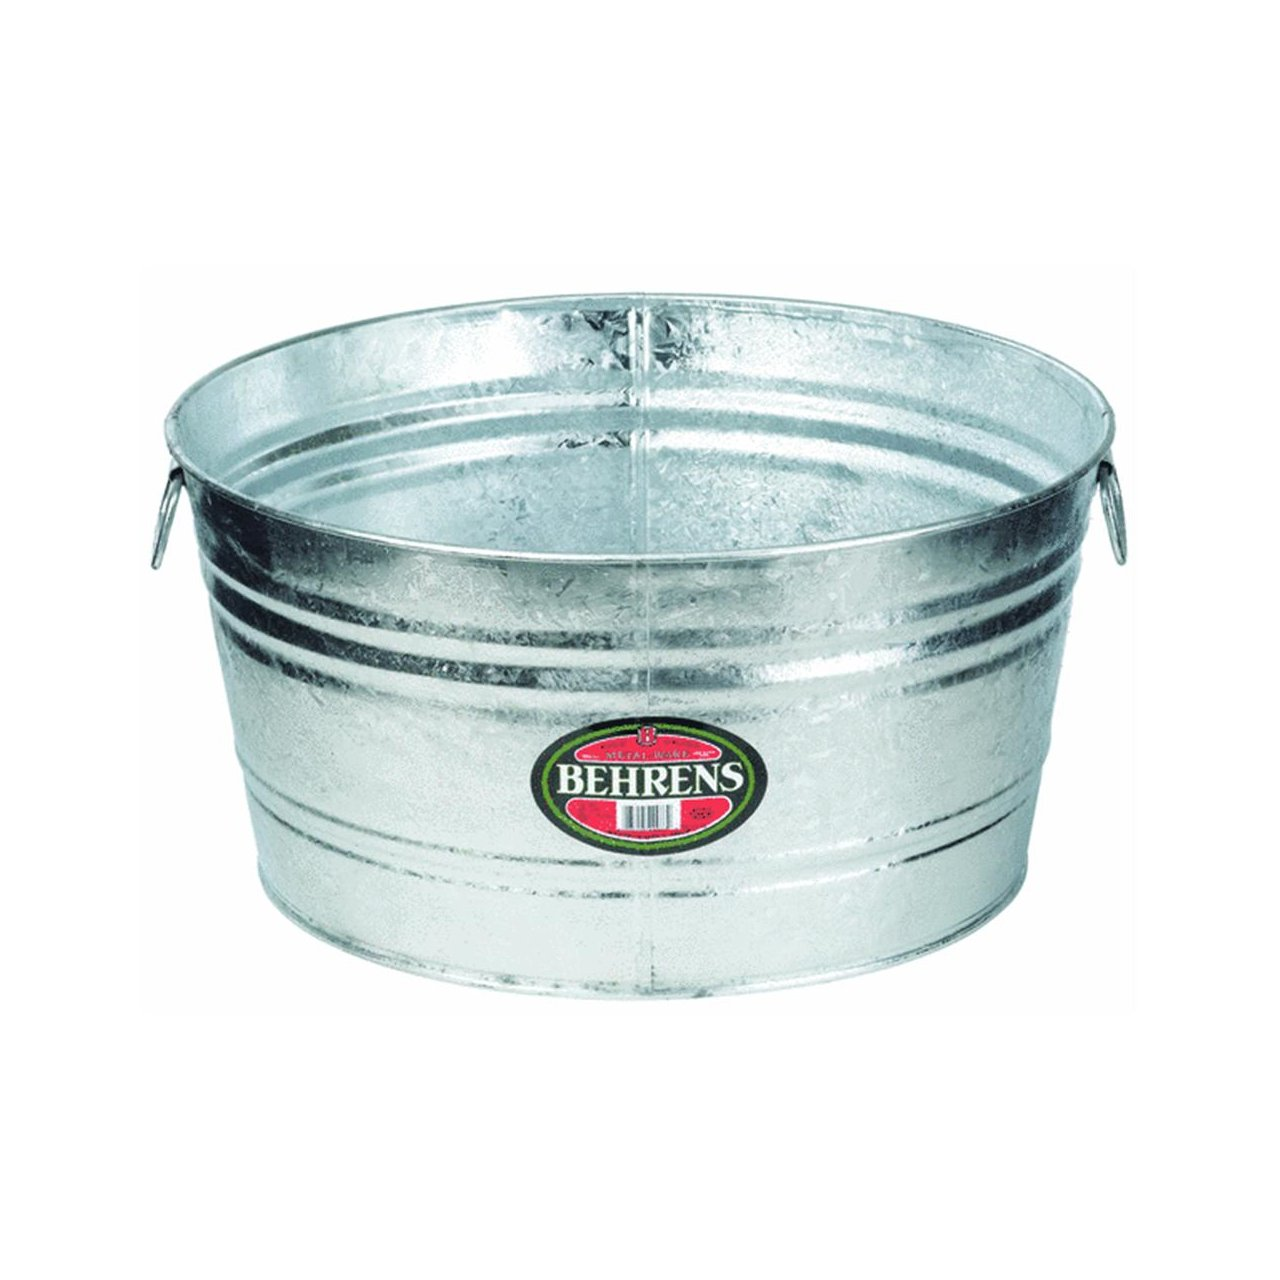 Amazon.com : Behrens 7 35-Gallon Round Steel Tub : Planters : Garden ...